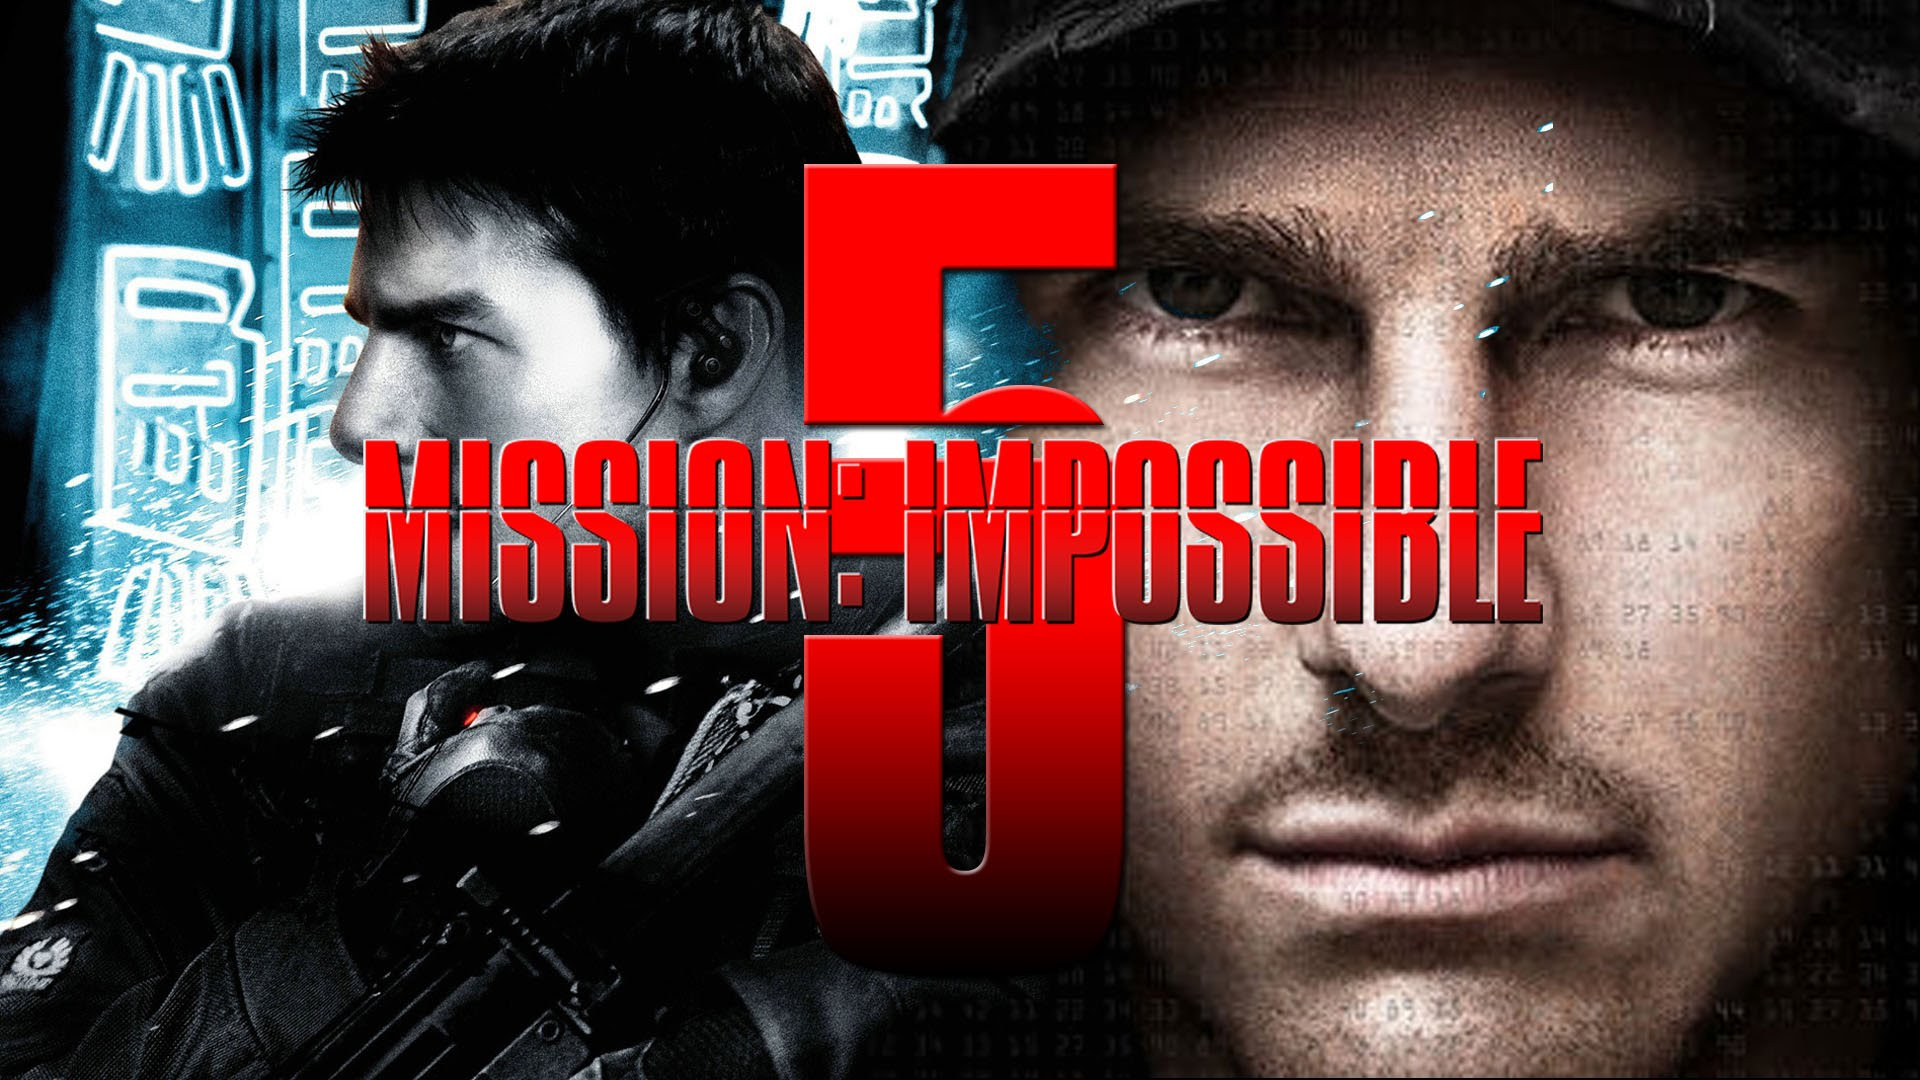 Mission impossible 5: The Rogue Nation